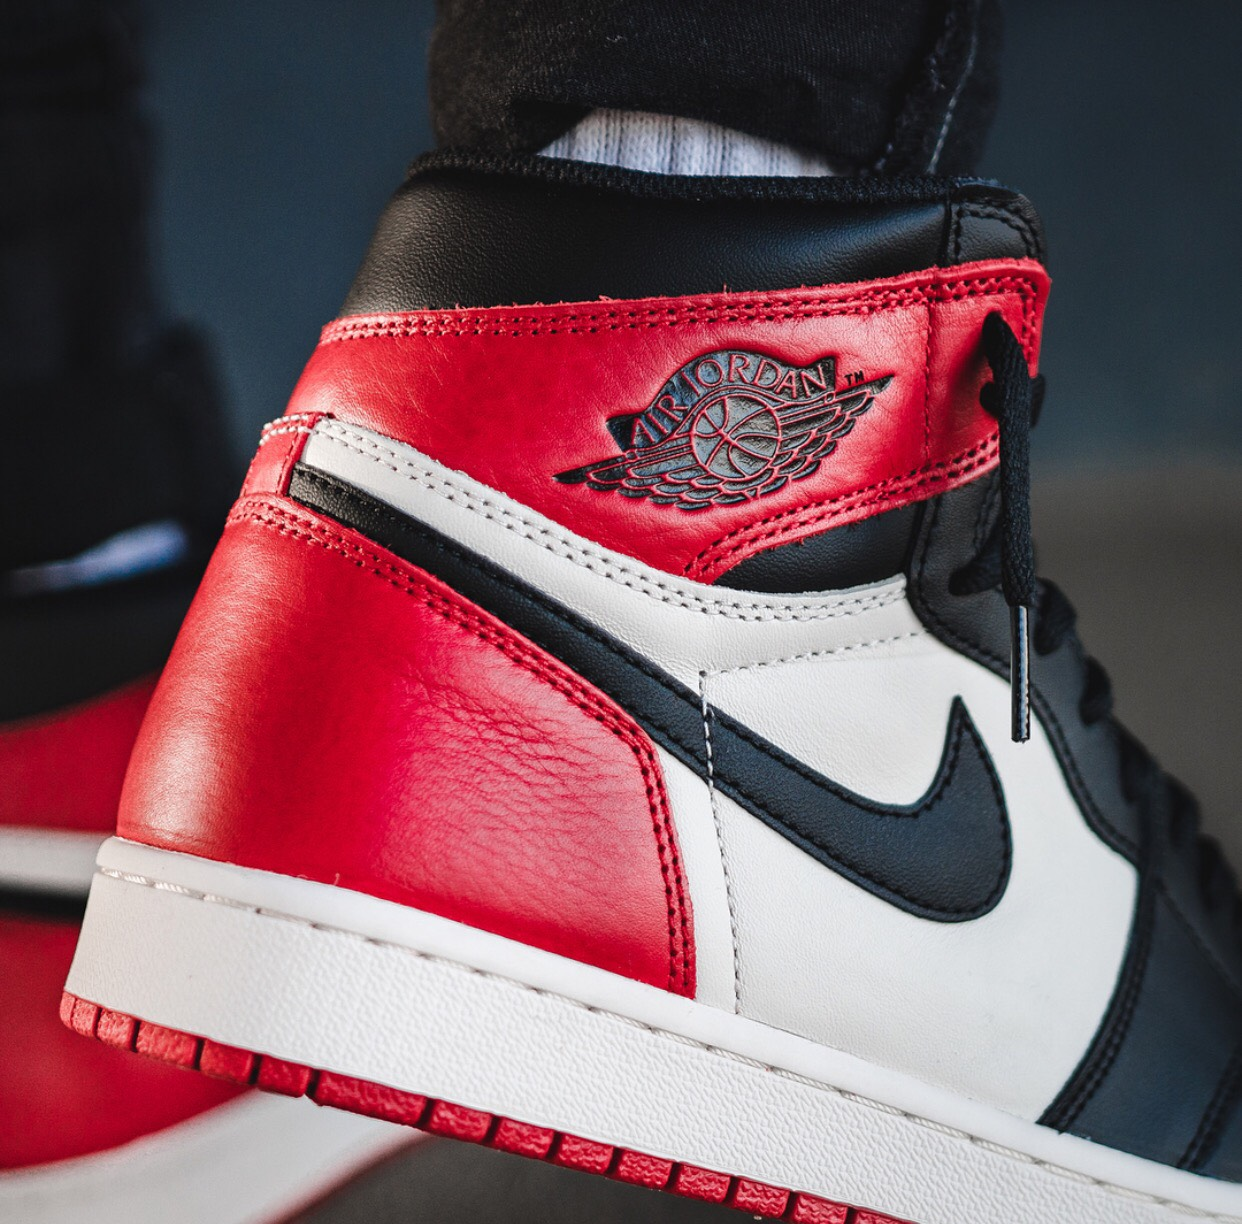 newest collection 88ae7 1e5e2 On-Feet Look At The Air Jordan 1 Bred Toe That Drops ...